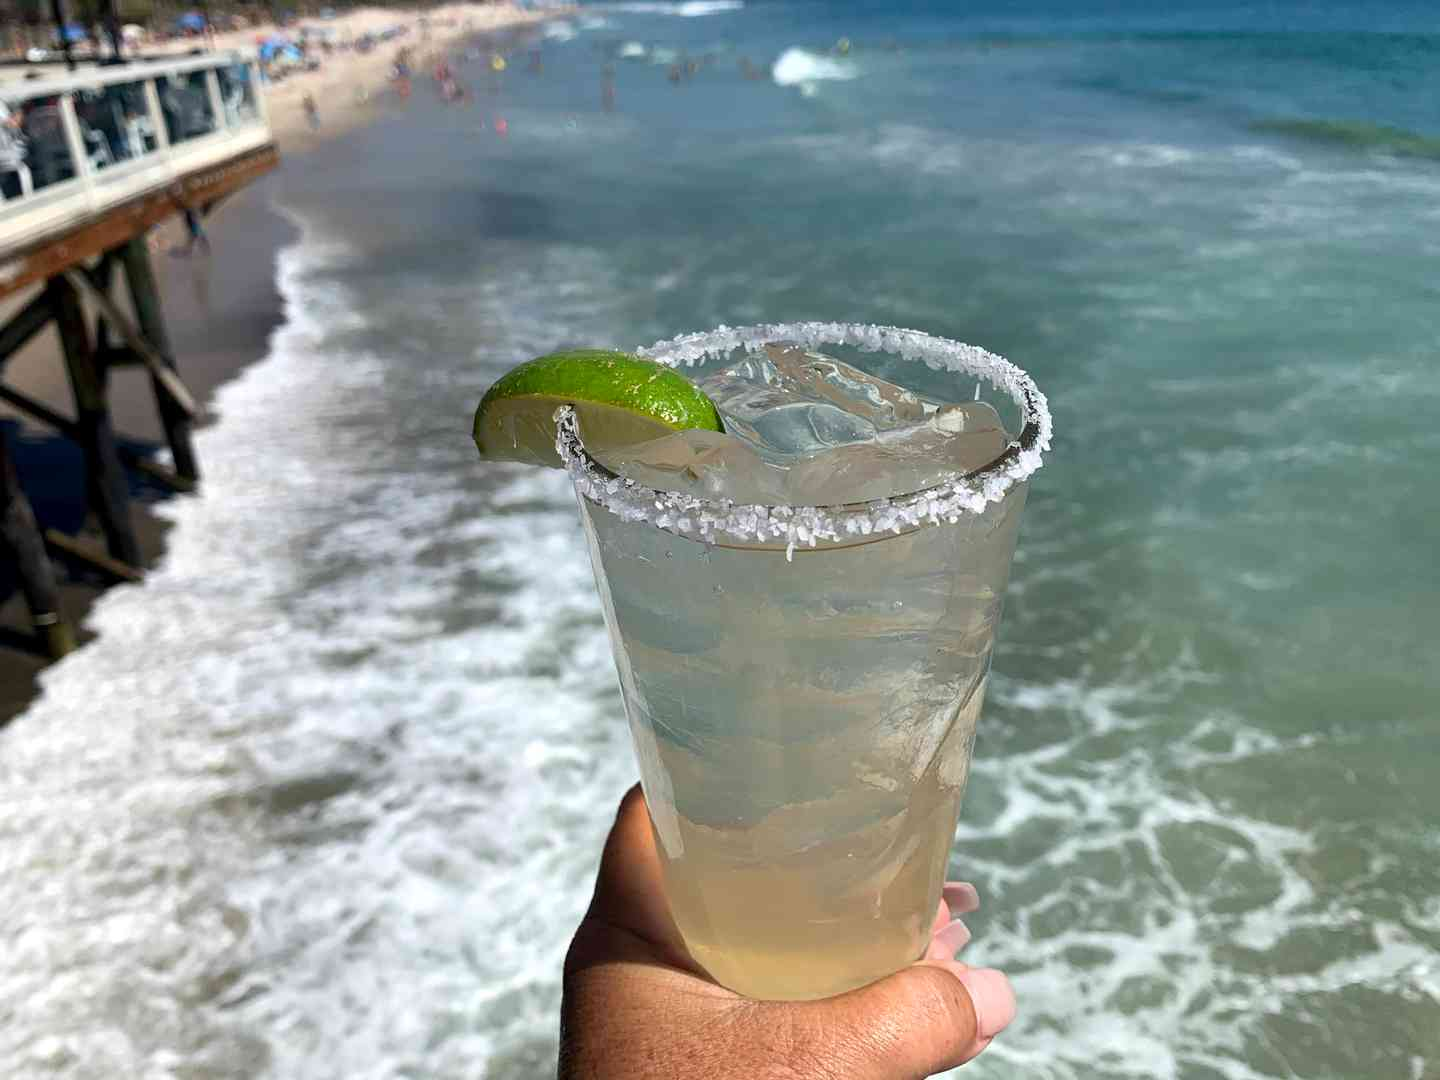 Fisherman's Margarita